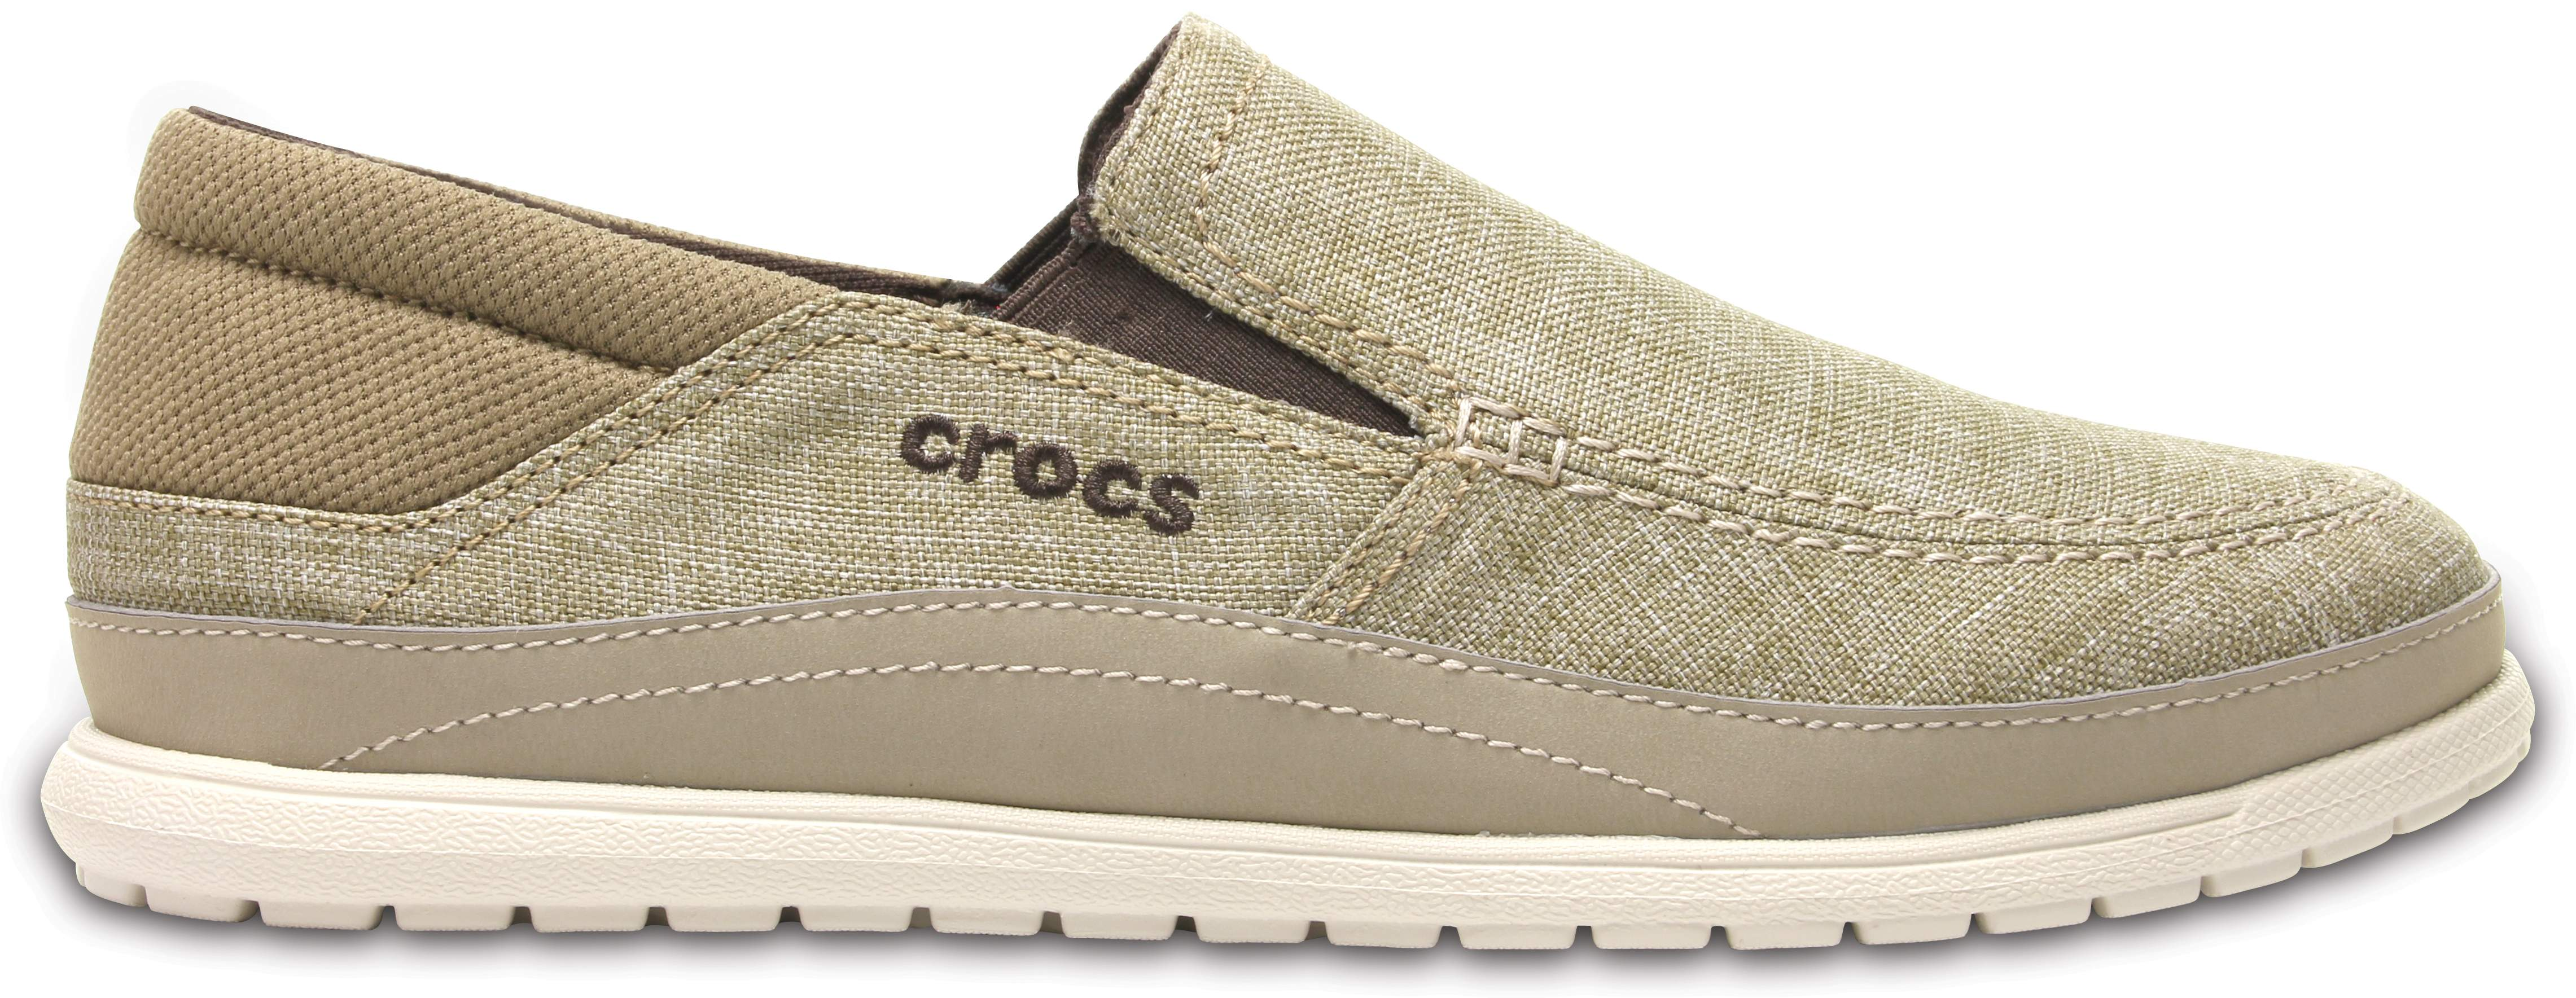 Crocs Santa Cruz Playa Men's ... Slip-On Shoes